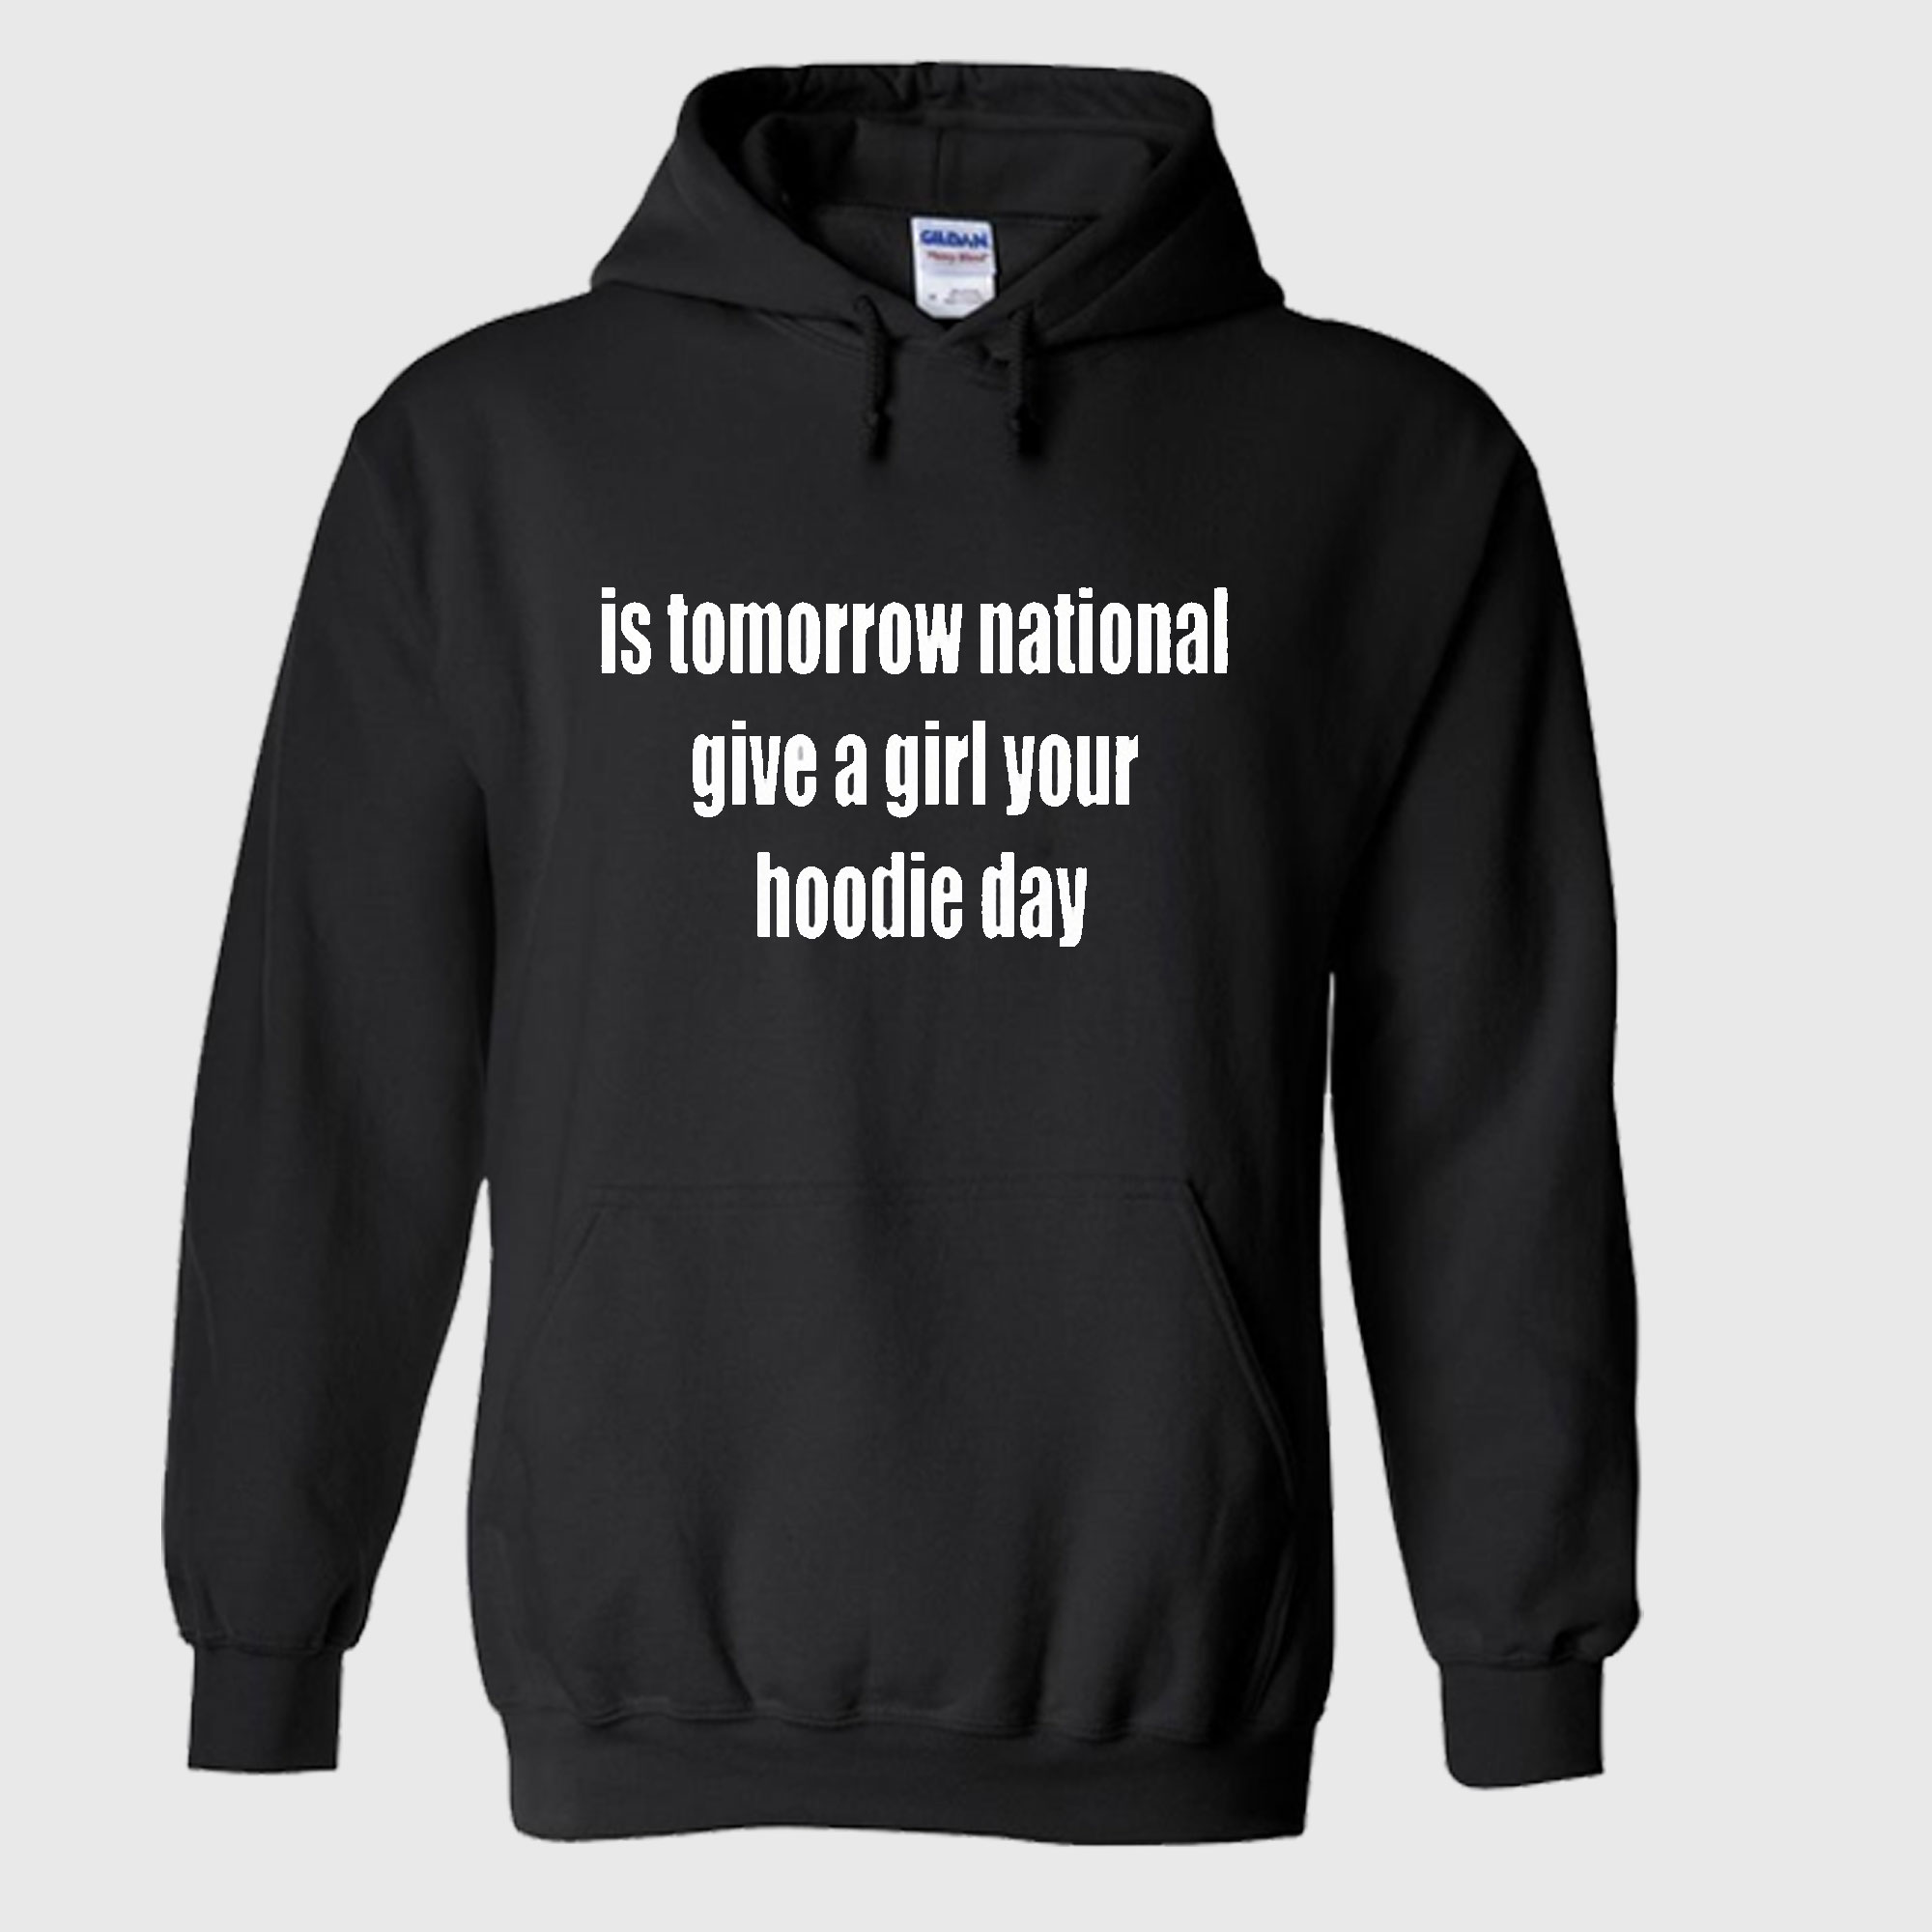 National Give Your Girl Your Hoodie